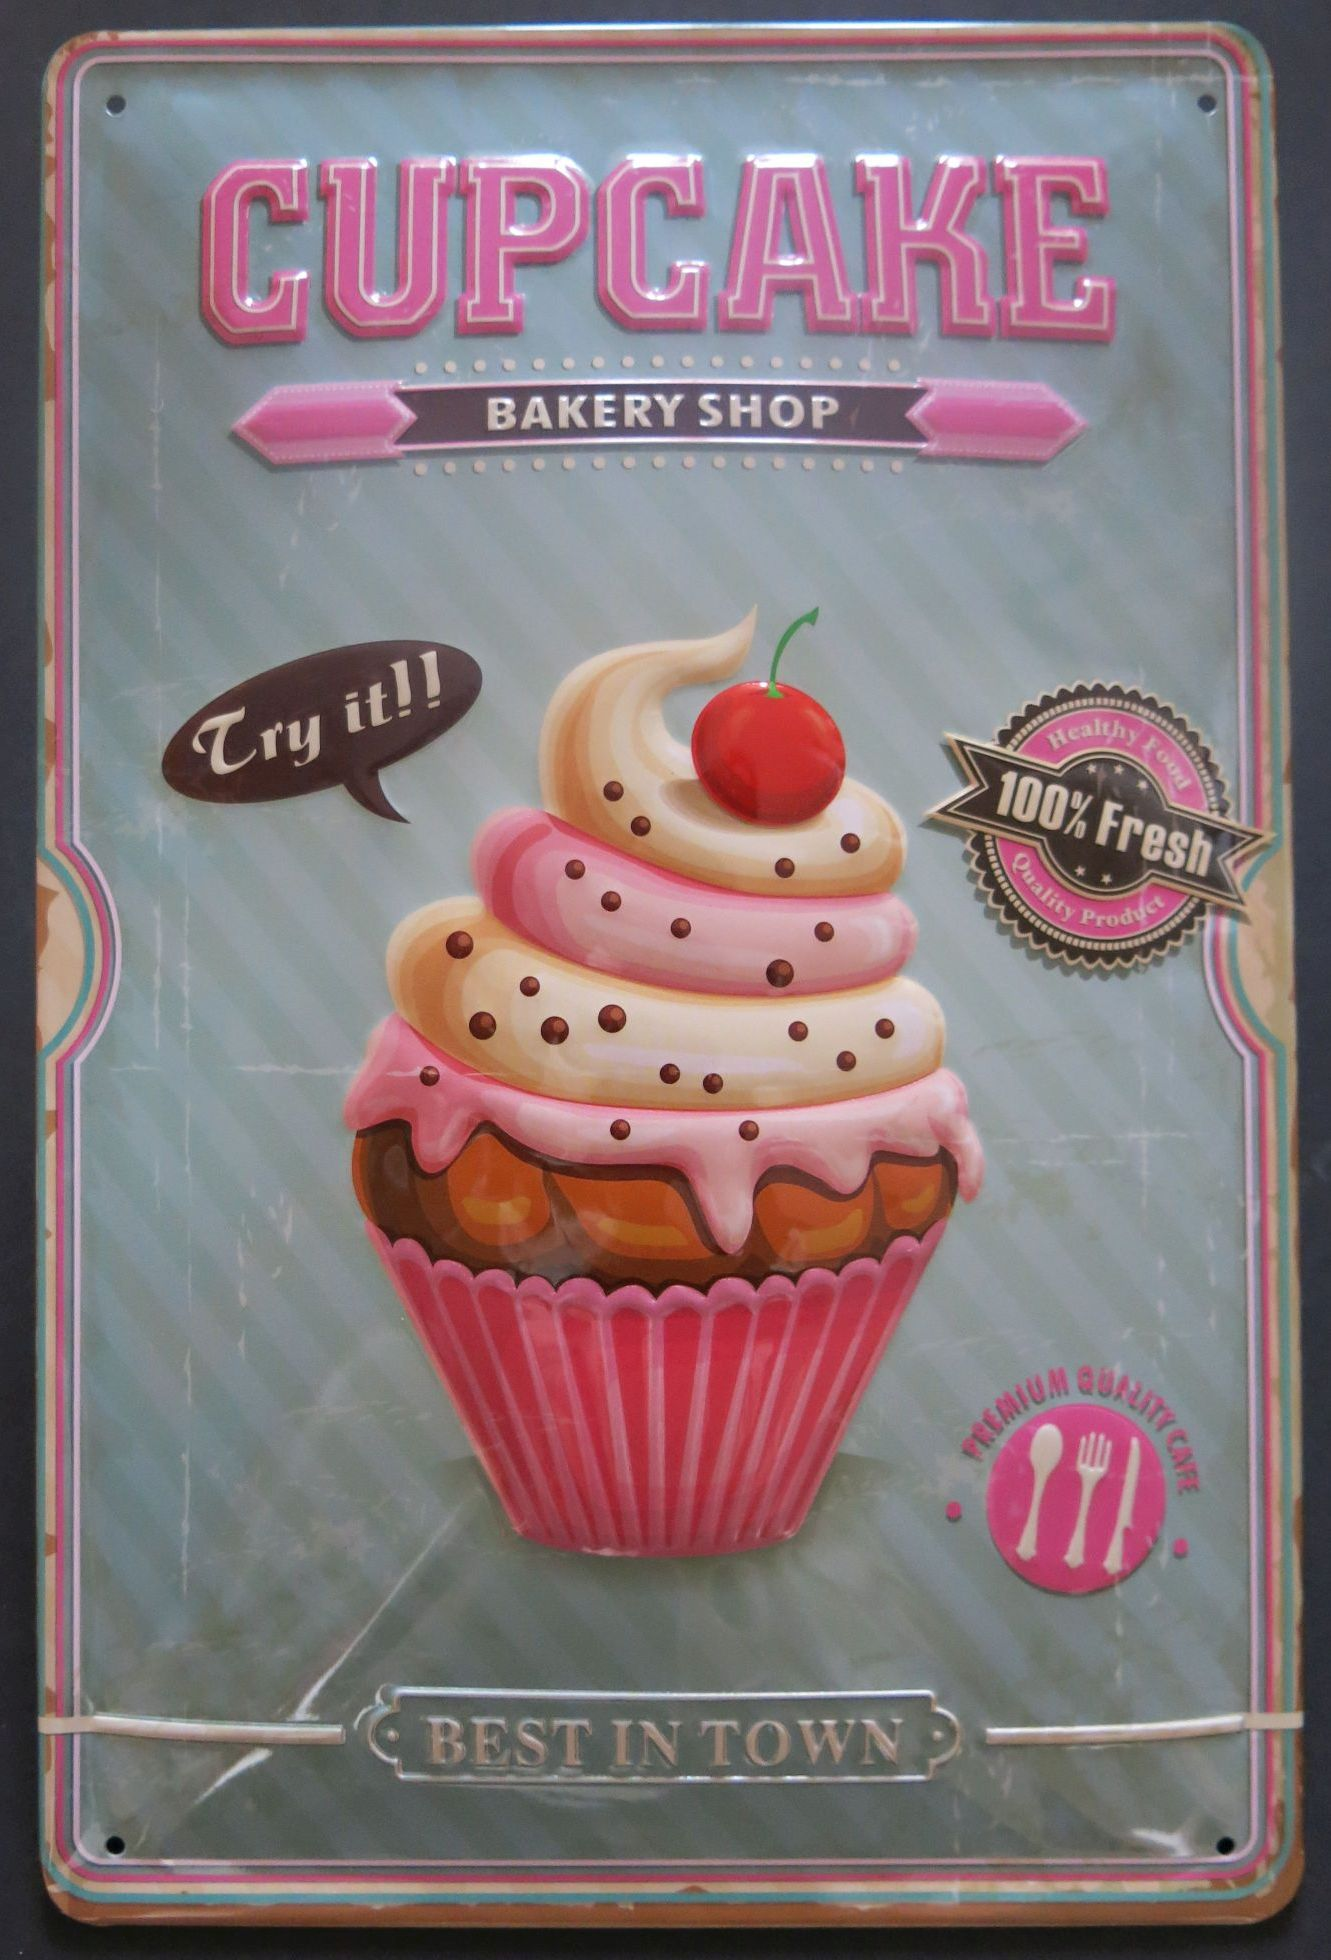 cupcake blechschild retro stil der 50er k che muffins ebay. Black Bedroom Furniture Sets. Home Design Ideas